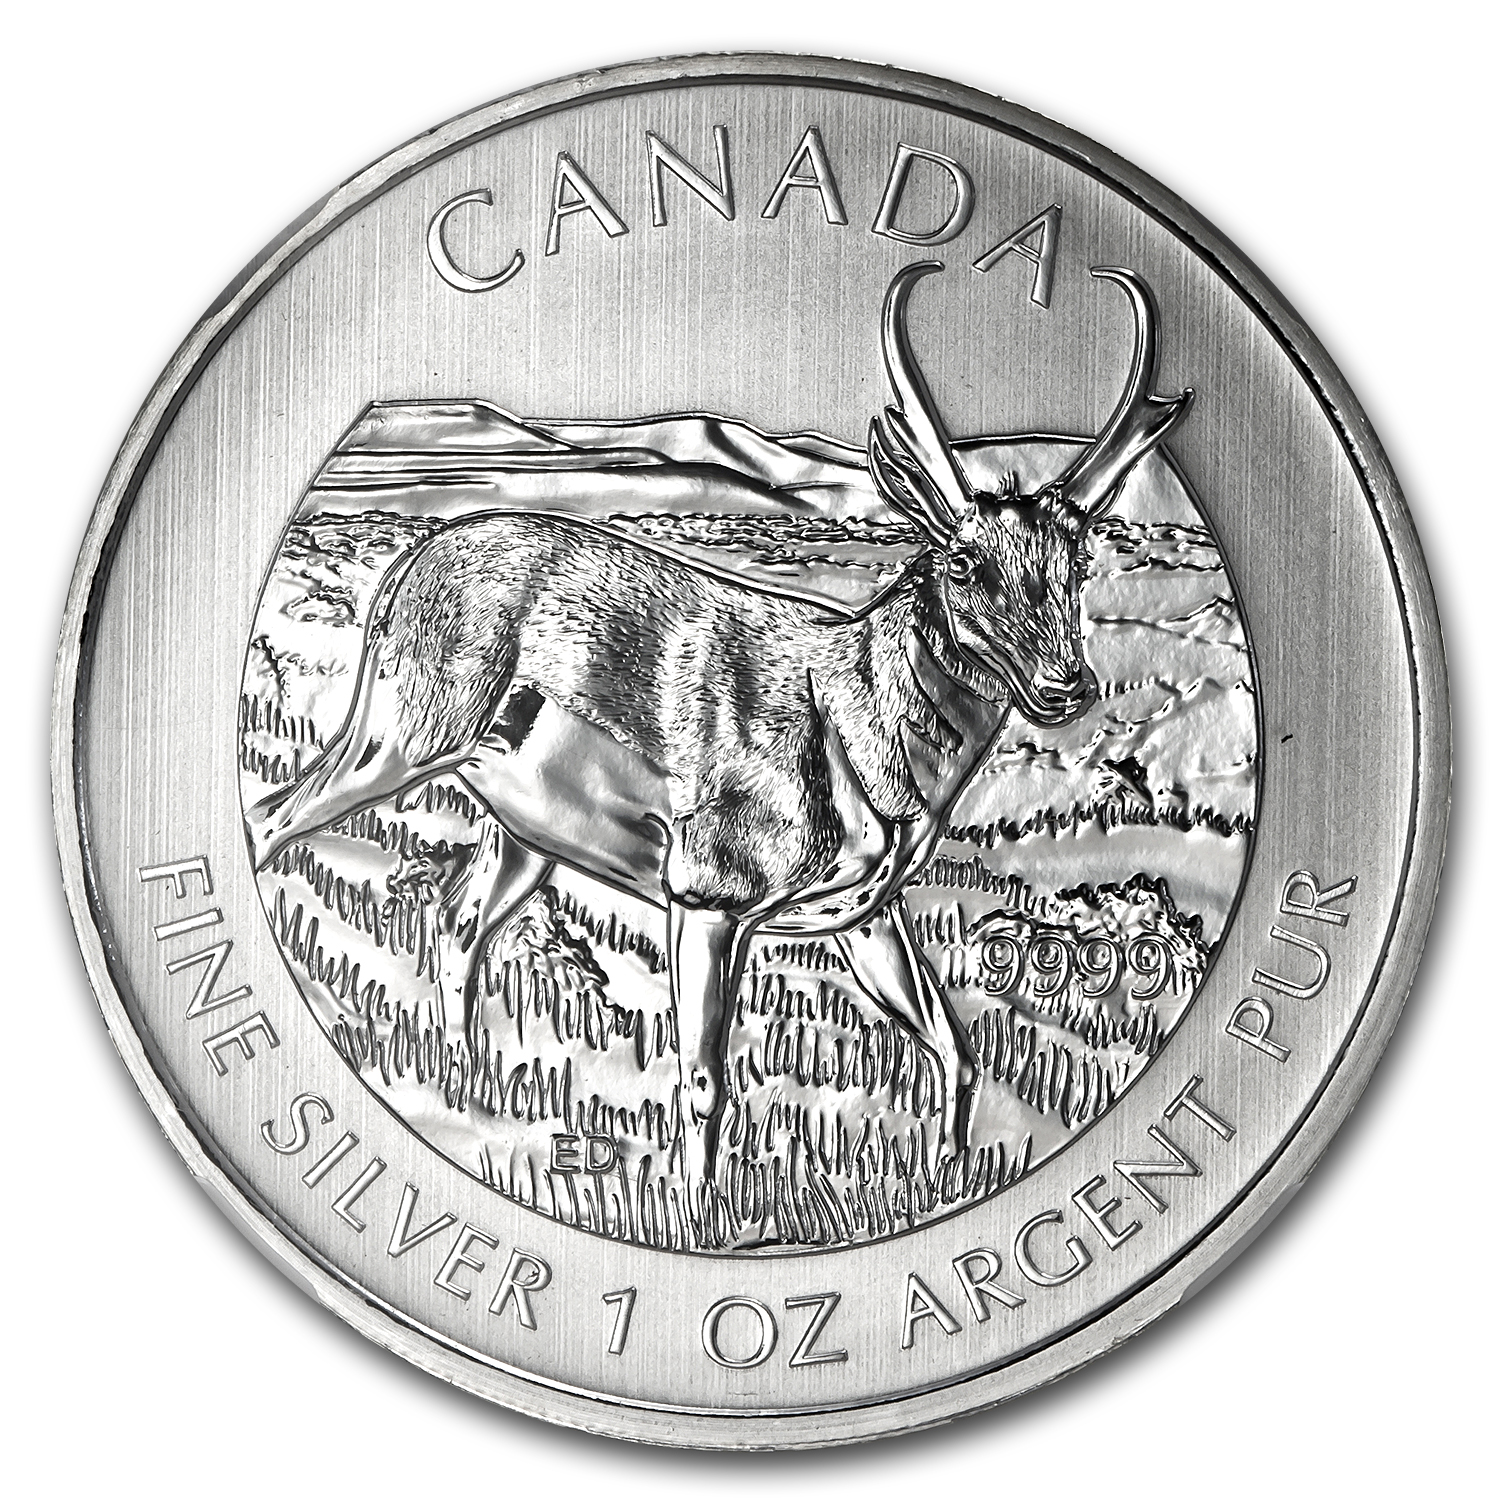 2013 Canada 1 oz Silver Wildlife Series Antelope MS-69 NGC